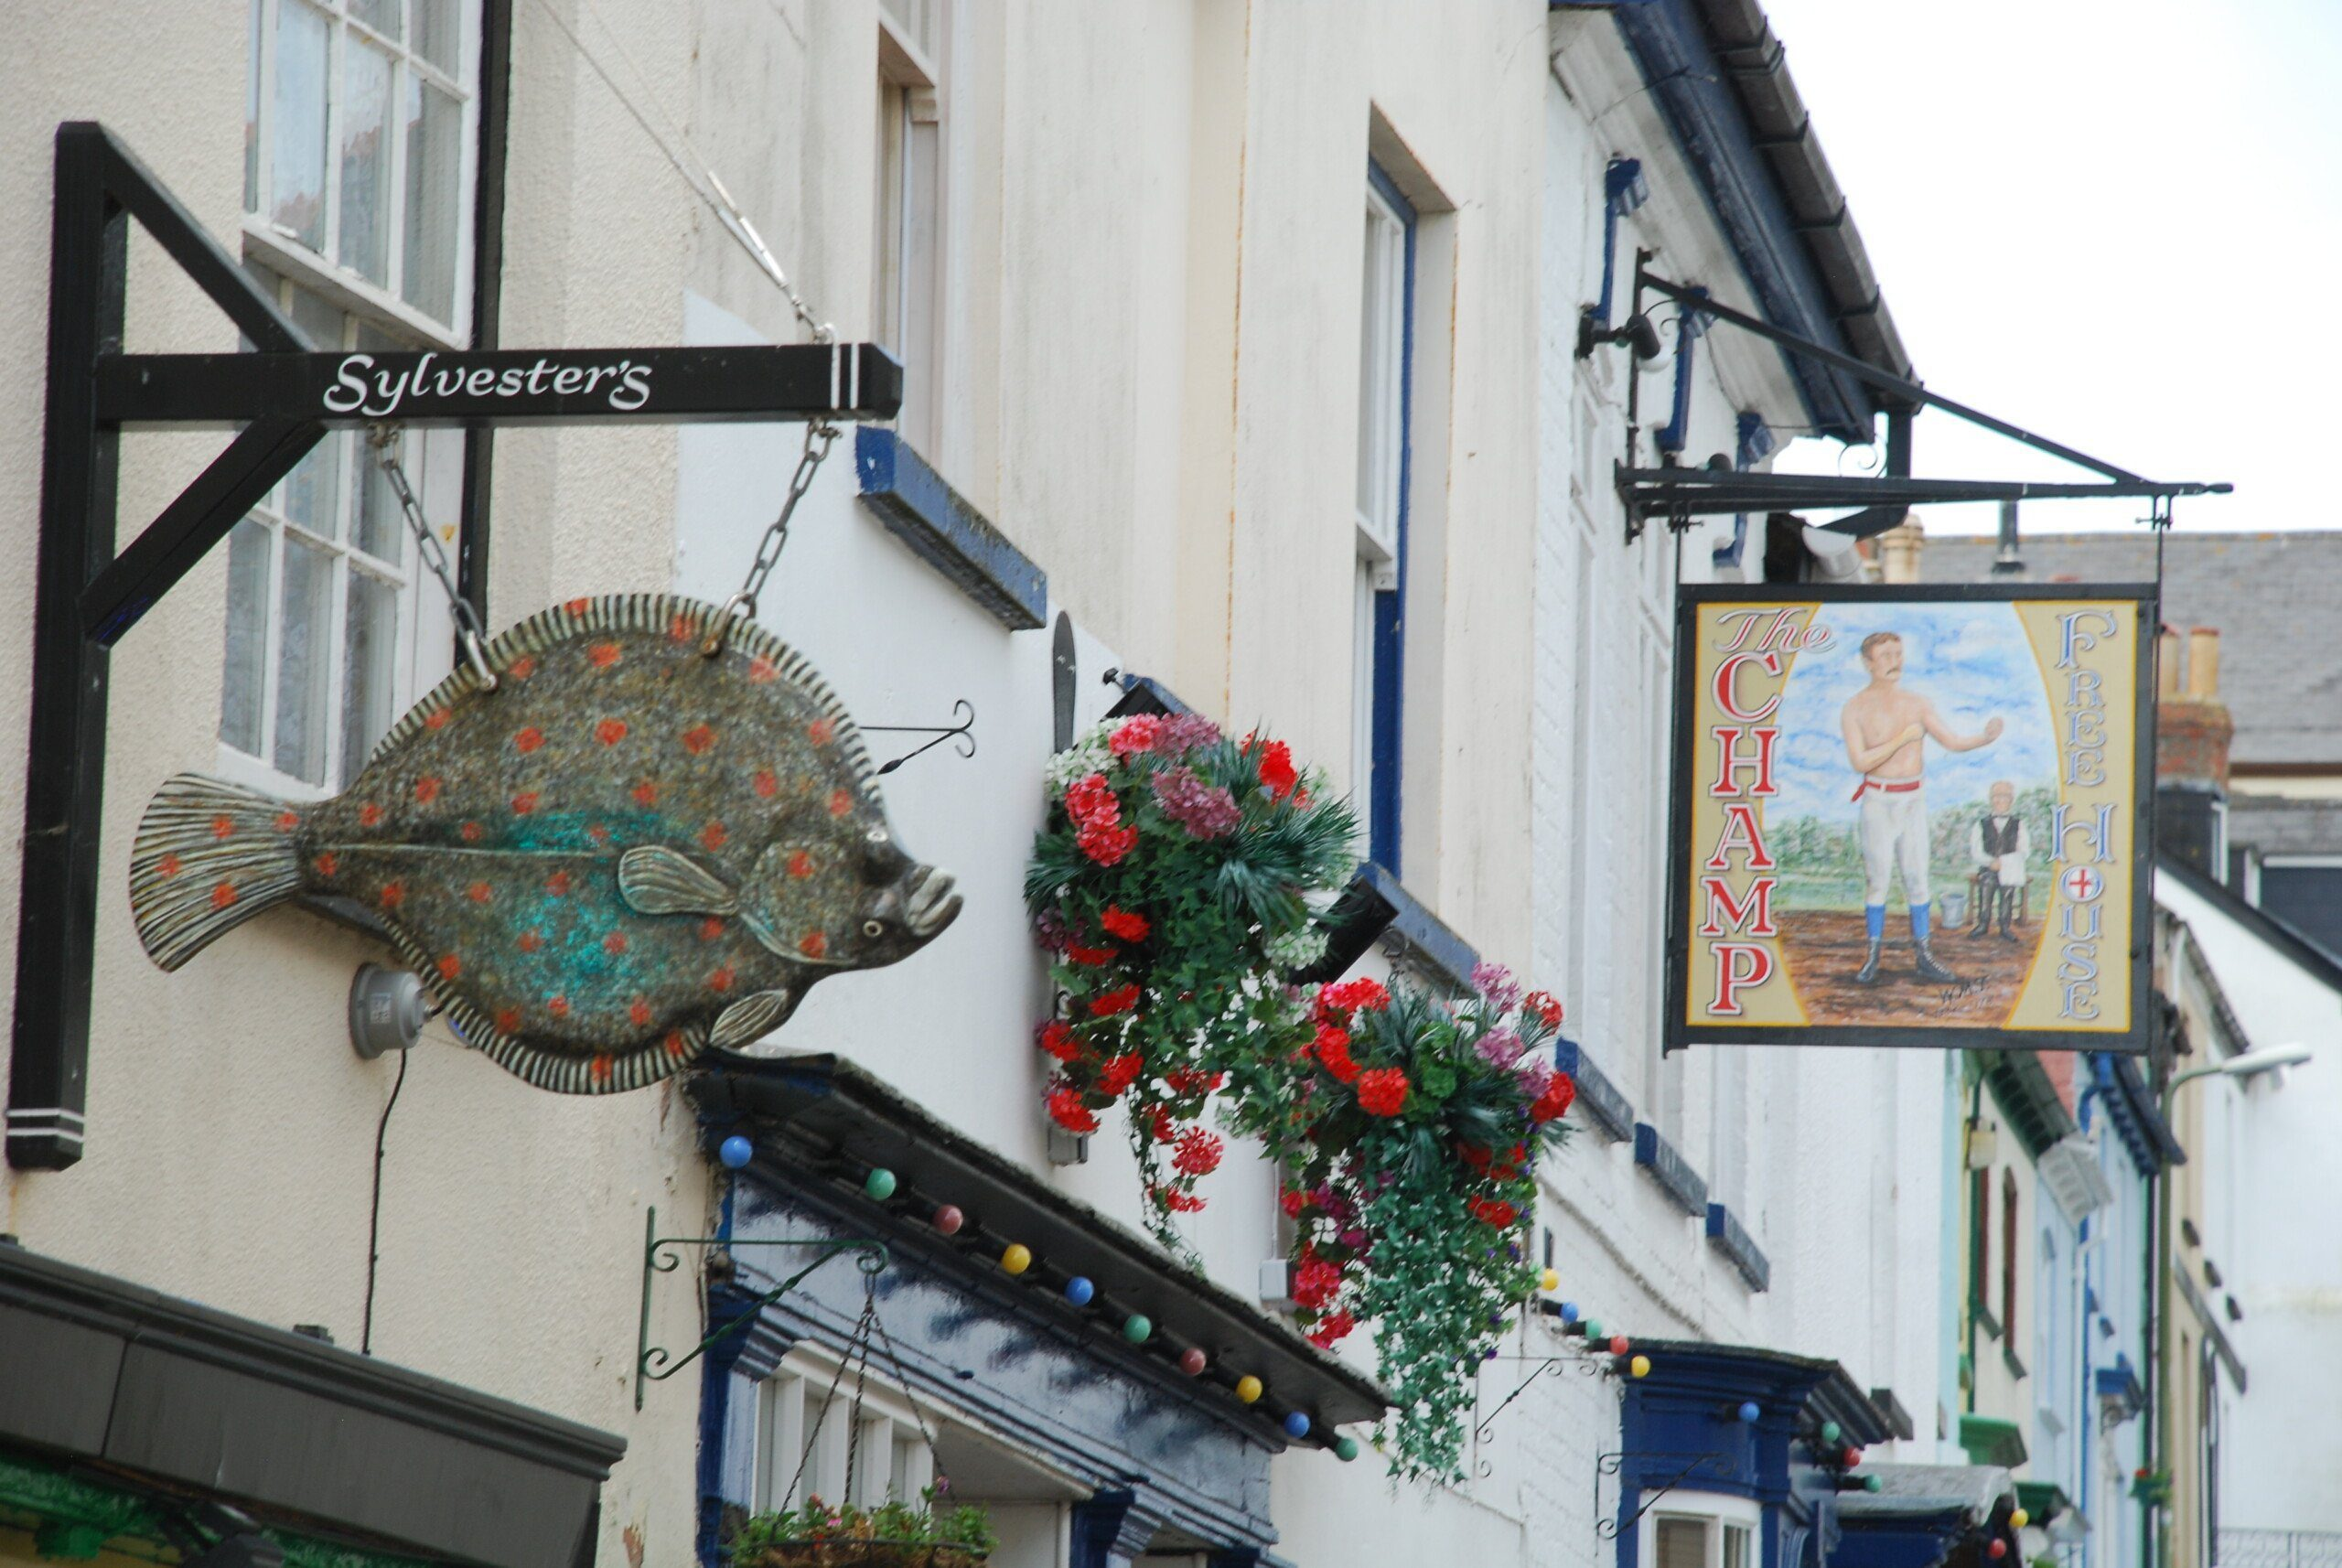 Hanging signs and shopfronts, including a fish and a pub called The Champ, Appledore, a lovely stop on the first Park of the South-West Coast Path